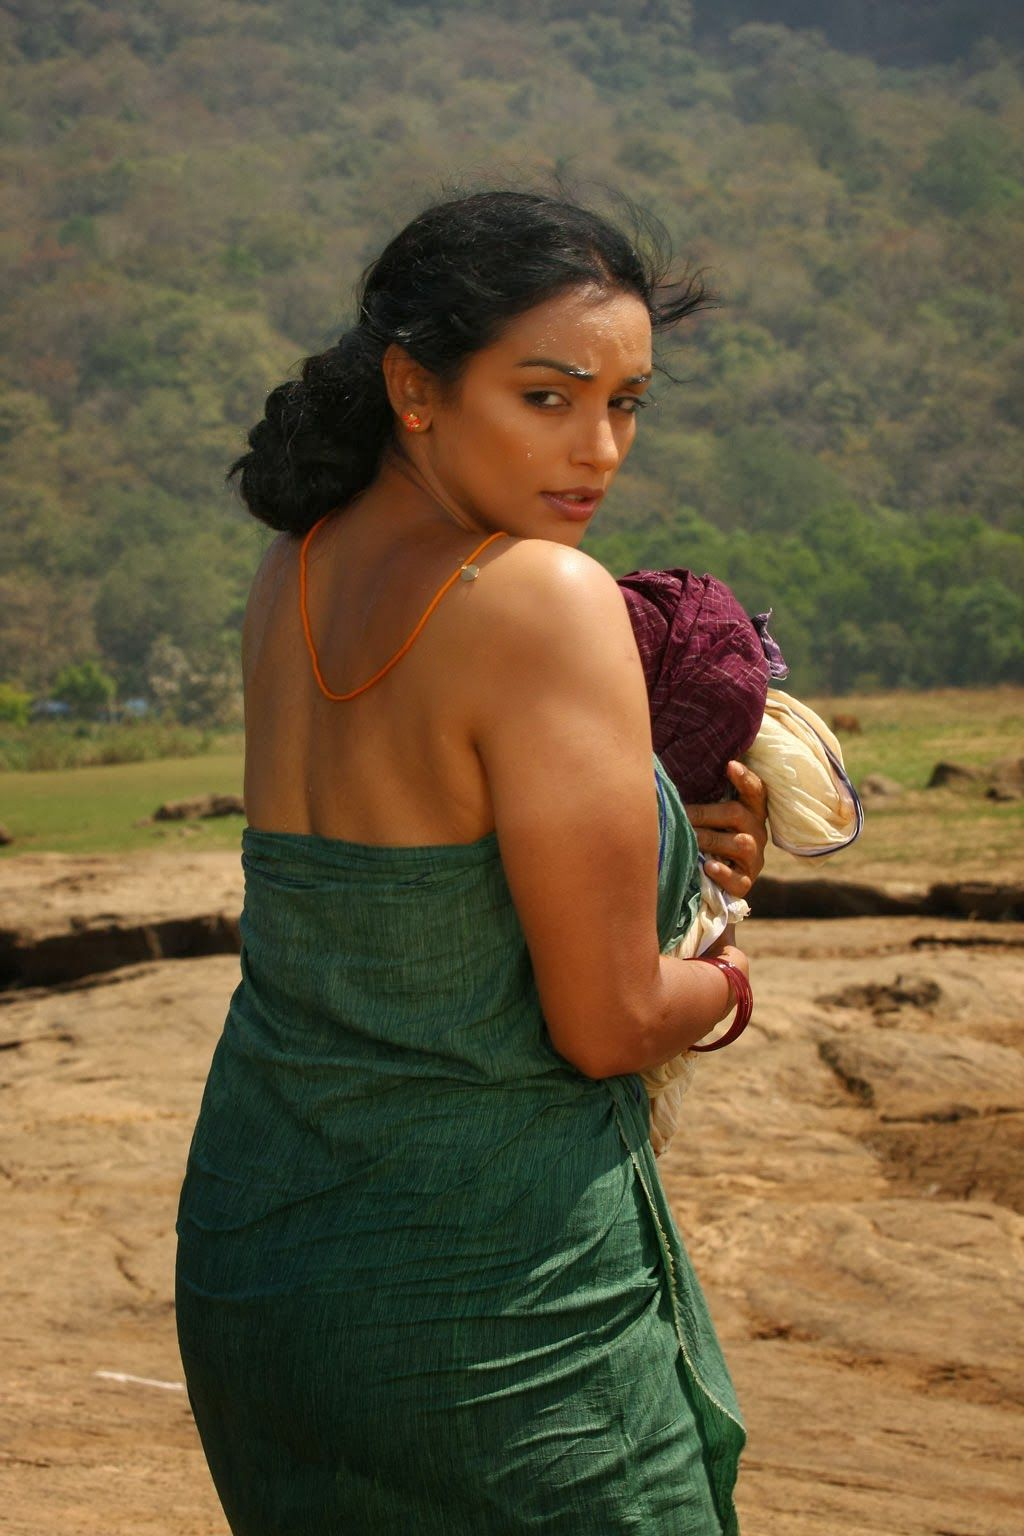 Hot Malayalam Actress Swetha Menon Latest Pictures And Hot Wallpapers Now Only At Hotimages Co In Check Out For Swetha Menon Super Sexy Stills And Also